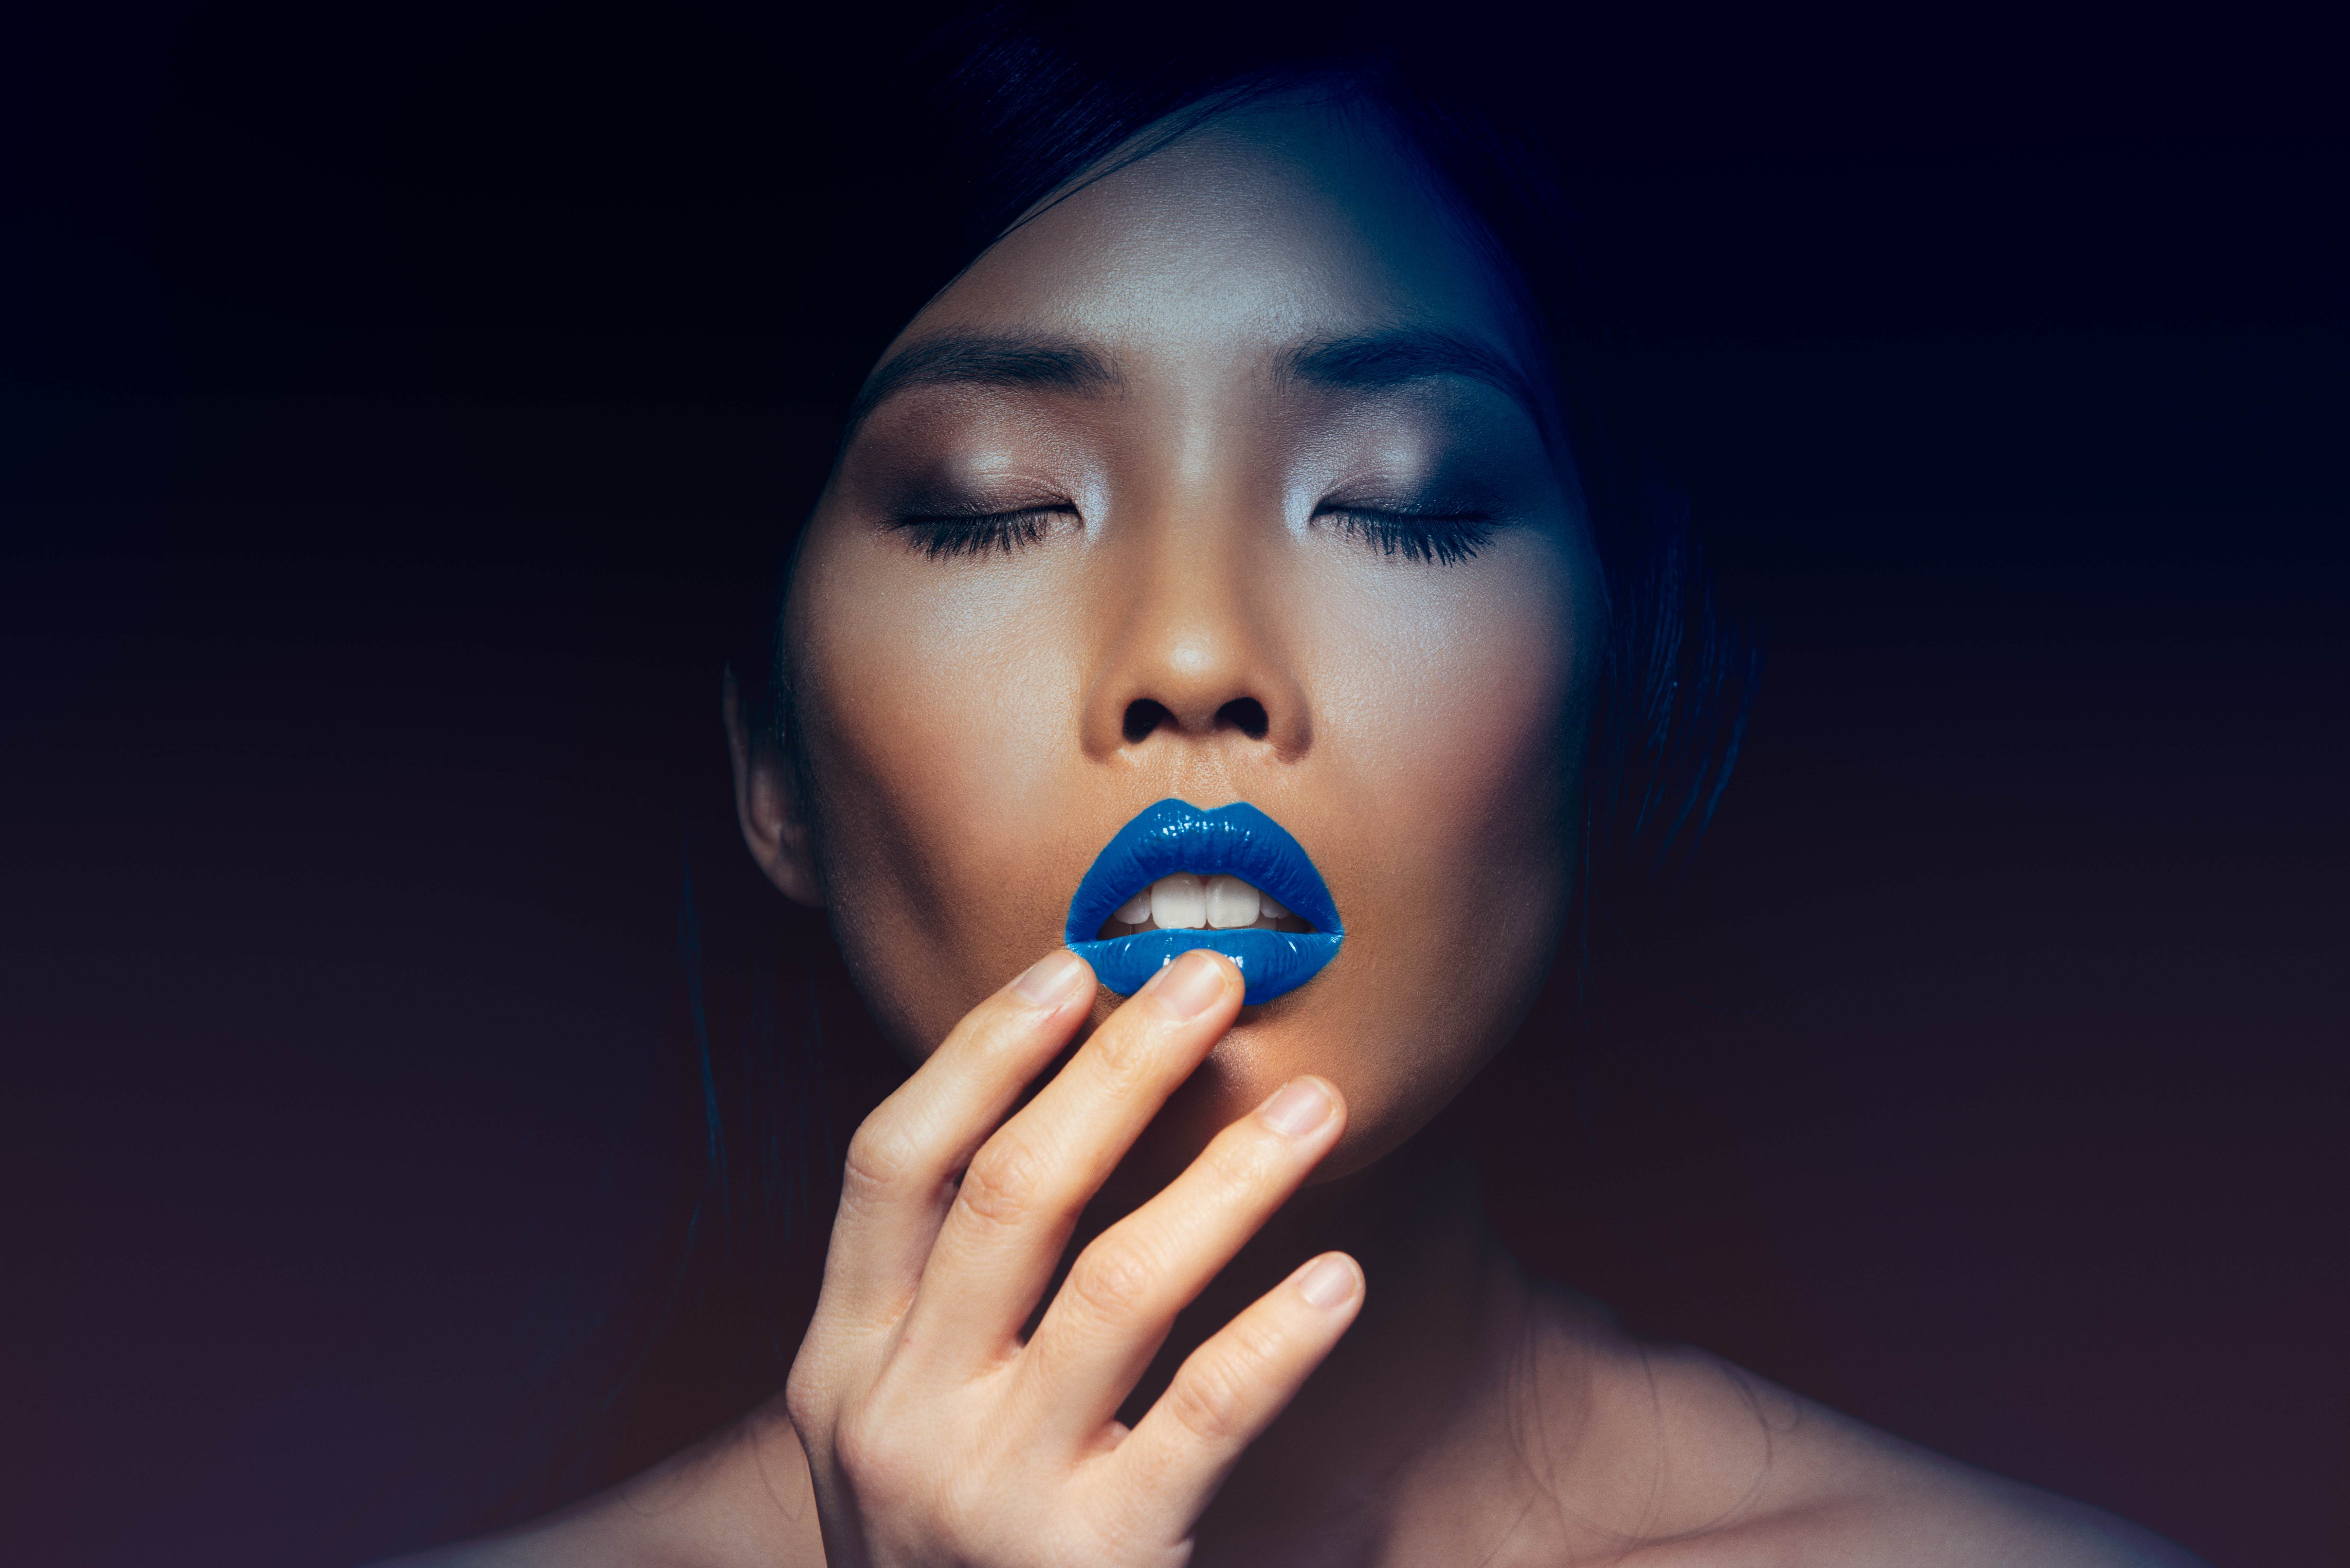 Beautiful woman on black background wearing Pantone colour of the year classic blue lipstick